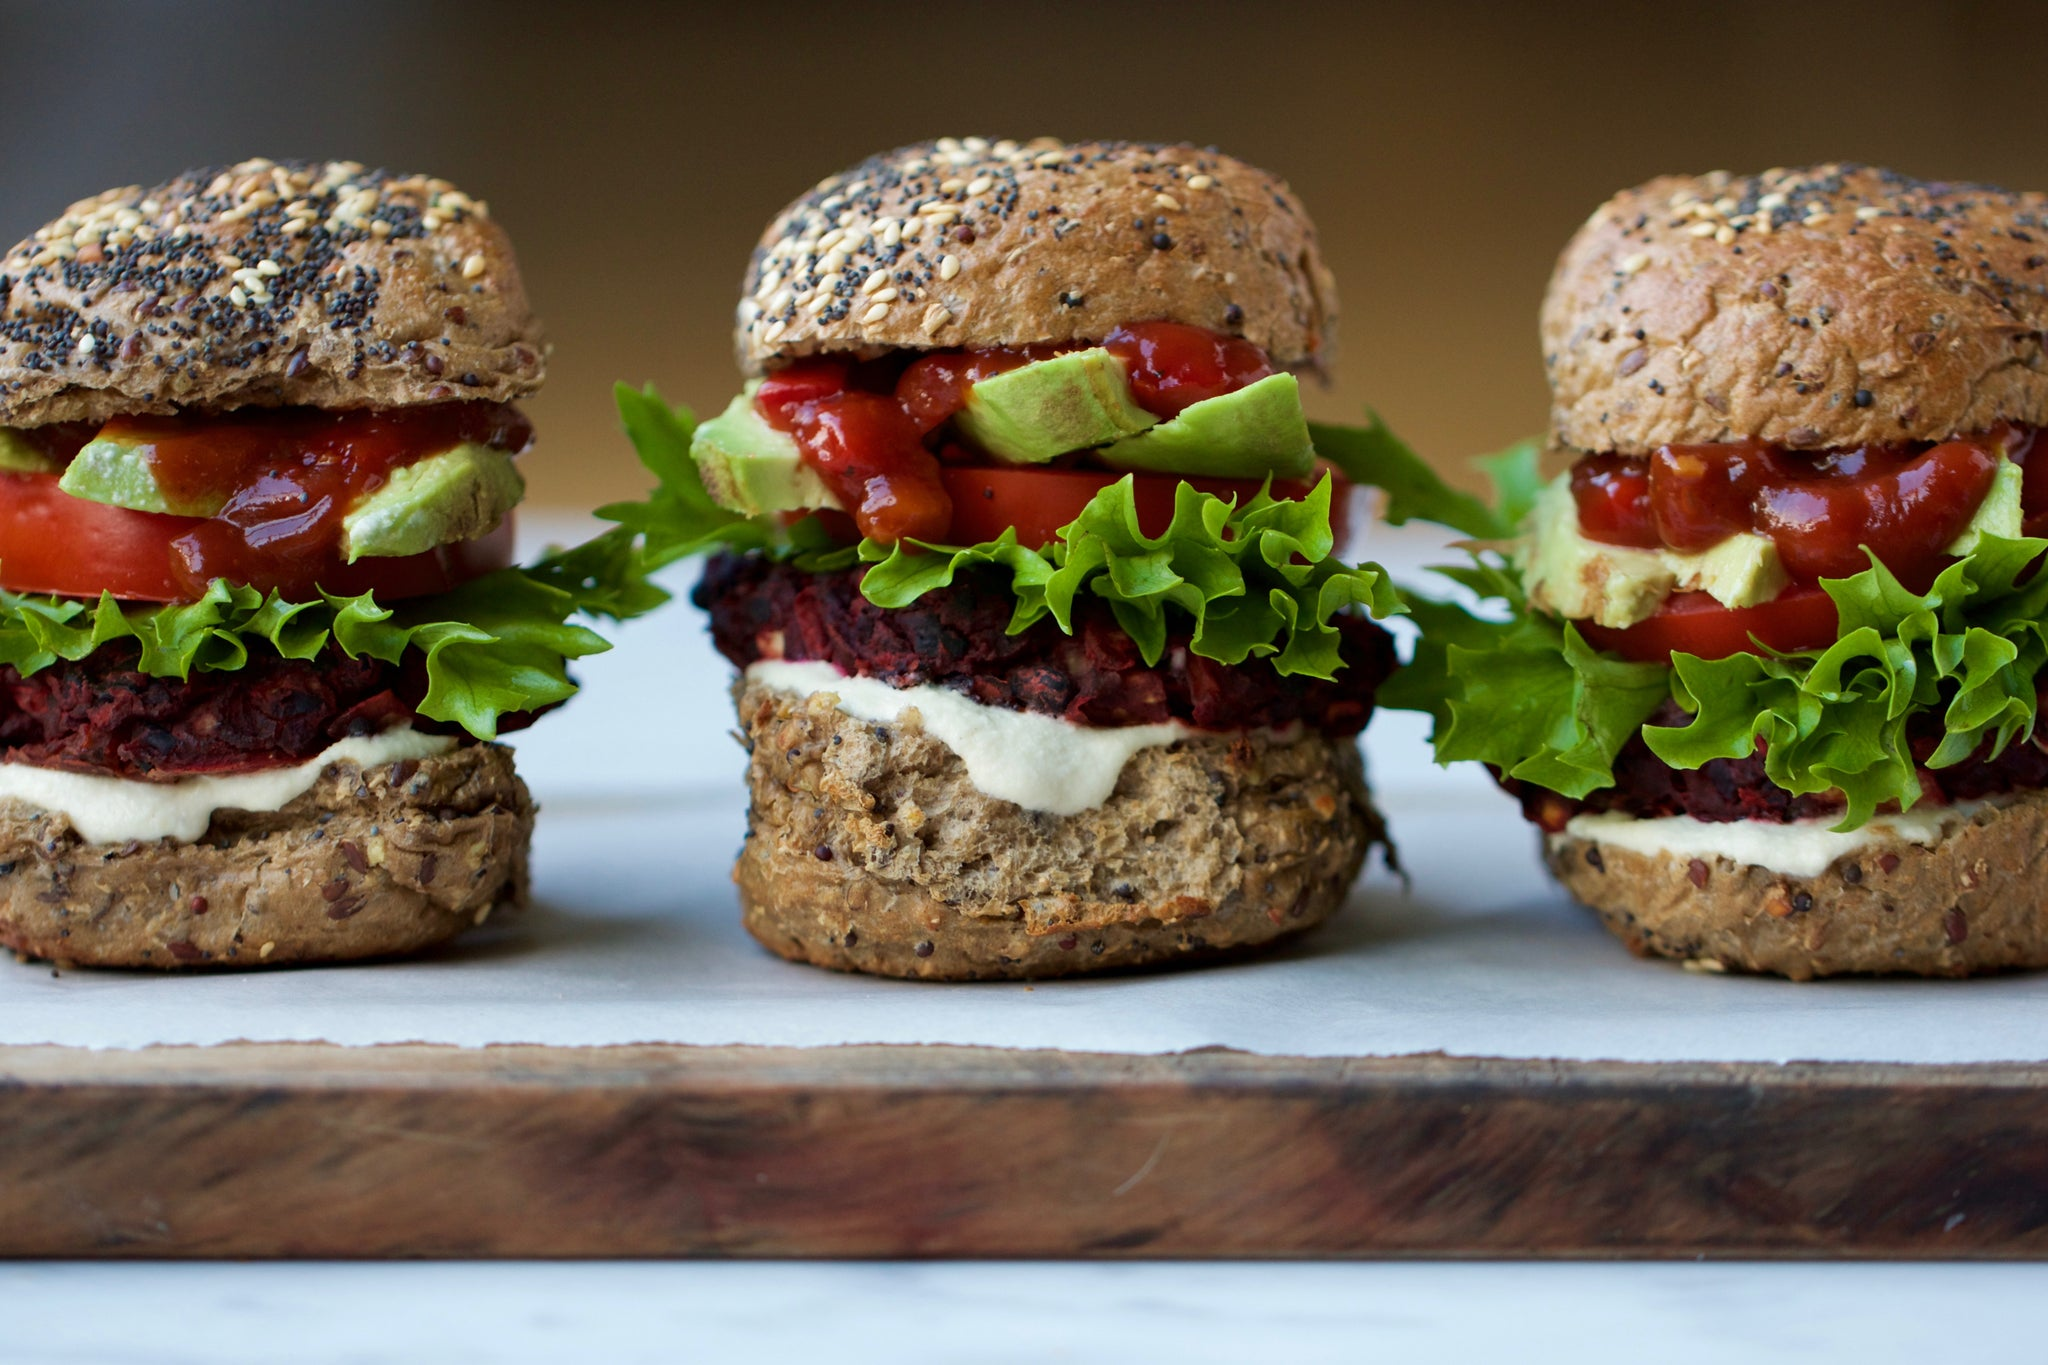 BEETROOT BASIL BLACK BEAN BURGERS - #vegan #vegetarian #dairyfree #glutenfree #eggfree #healthy #burger #recipe #begoodorganics